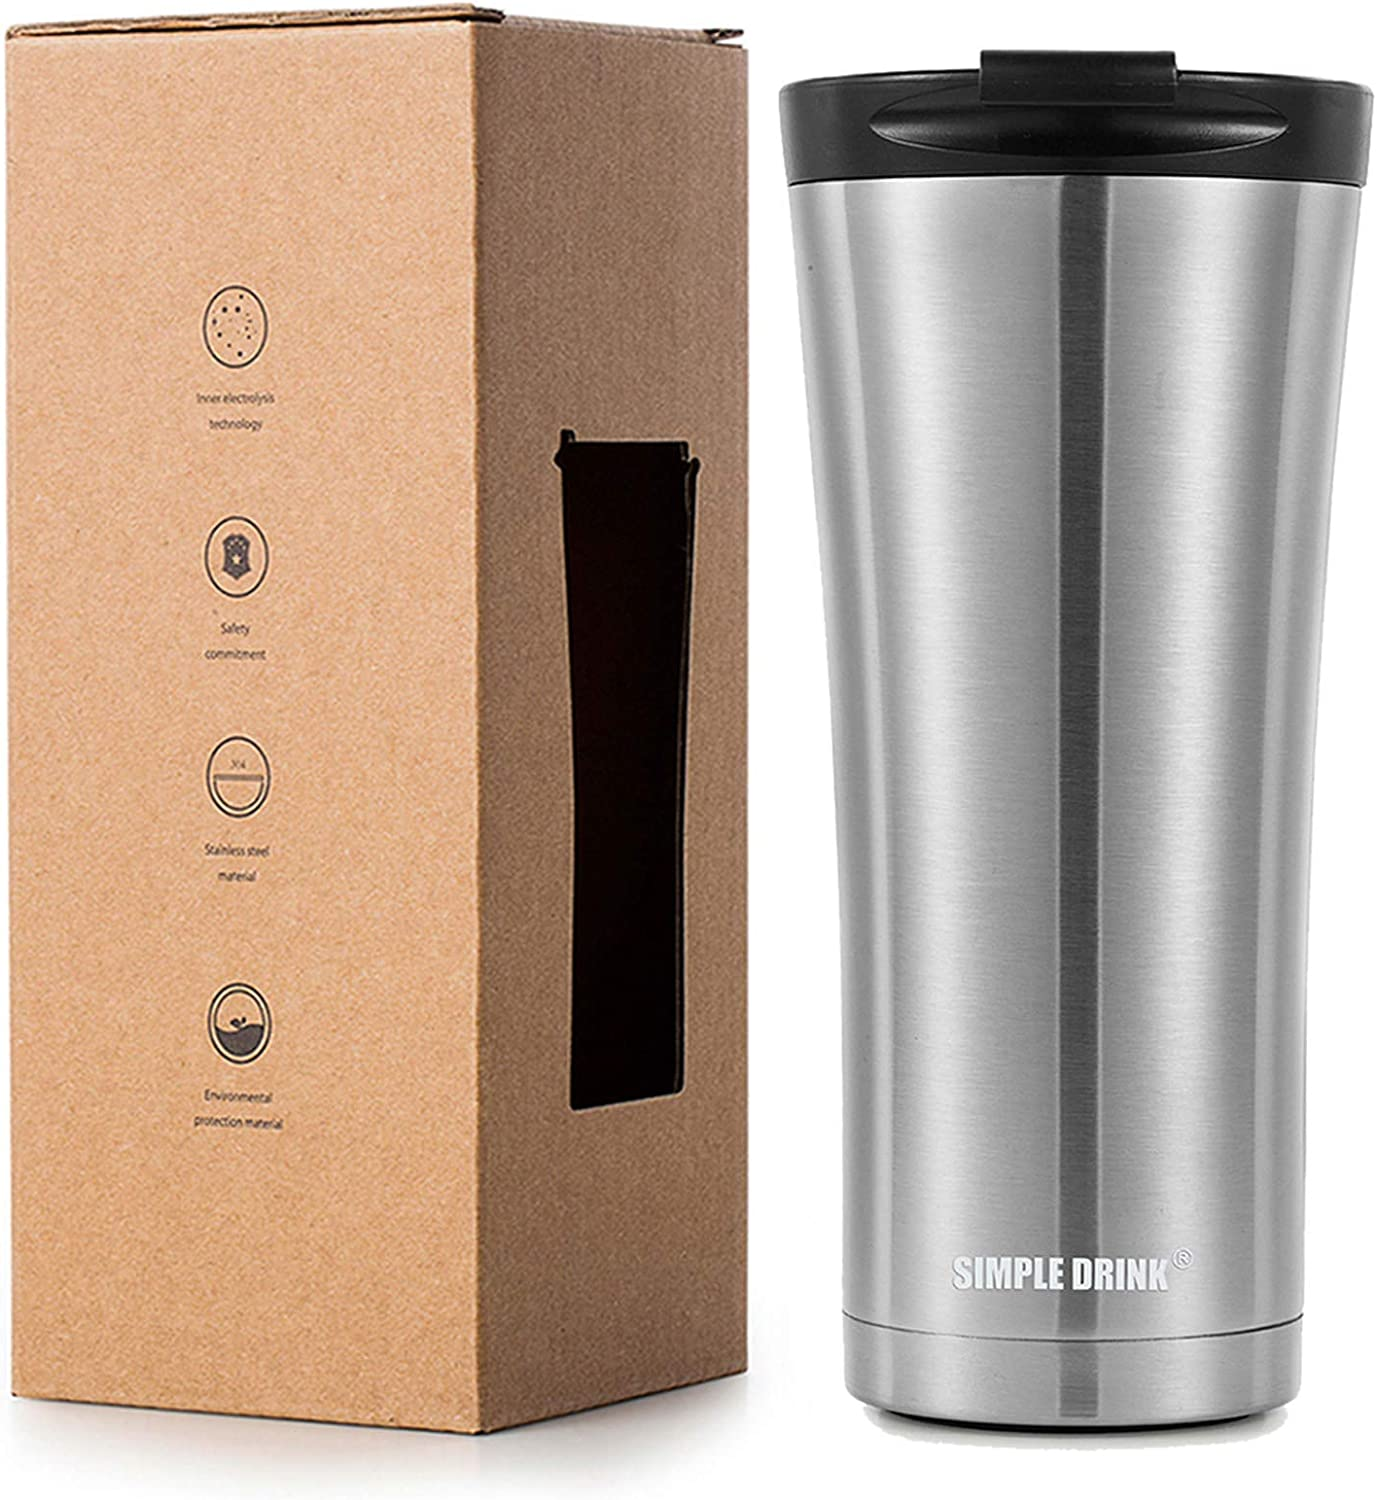 SIMPLE DRINK Insulated Coffee Travel Mug 16 oz | Sturdy Stainless Steel Tumbler Cup with Spill-Proof Lid - Works Great for Ice Drink, Hot Beverage